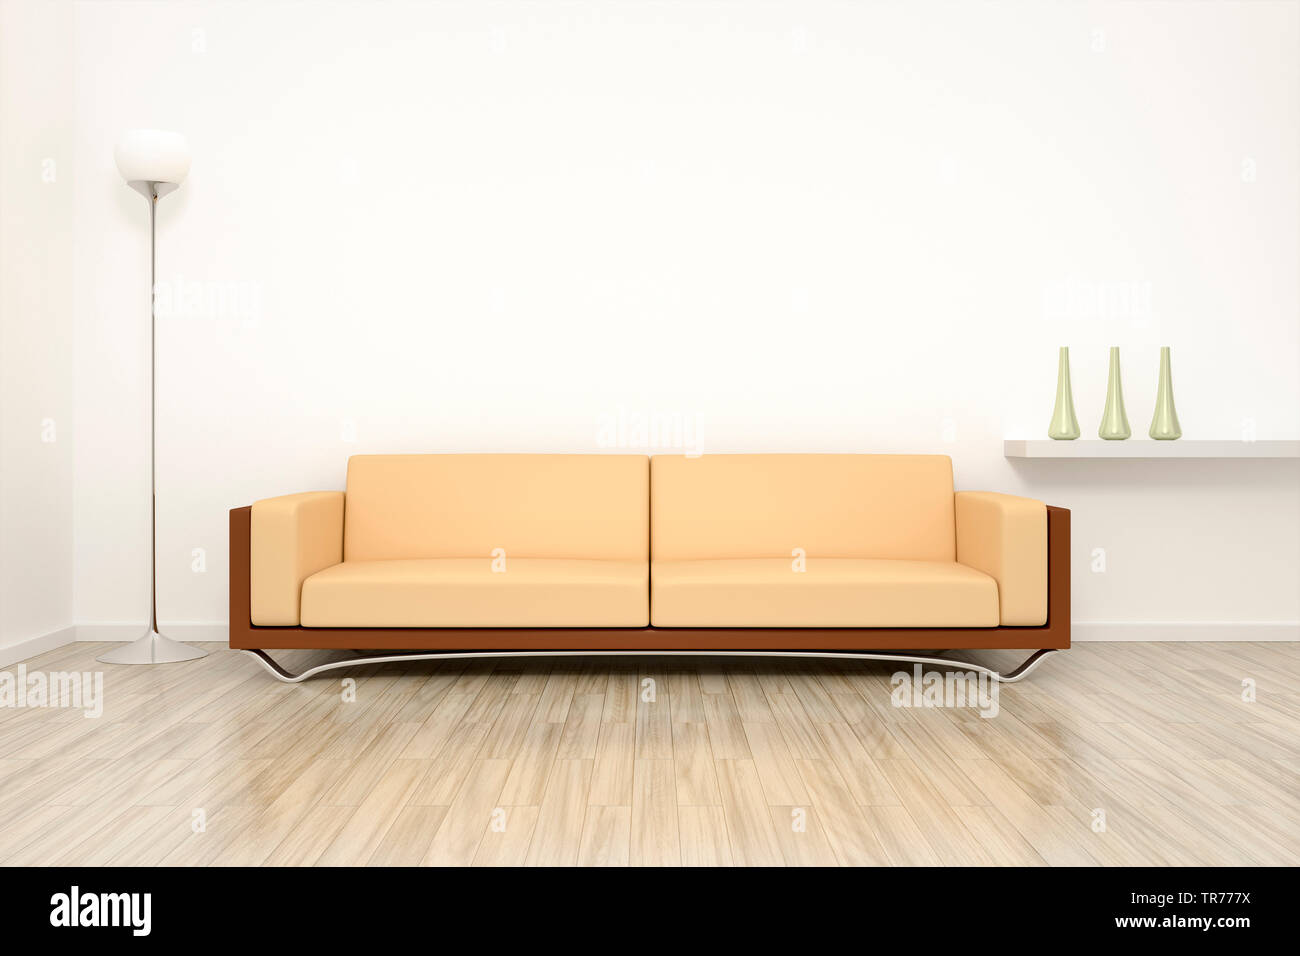 3d Computer Graphic Interior Design With Modern Leather Sofa In Beige Color Against A White Wall Stock Photo Alamy